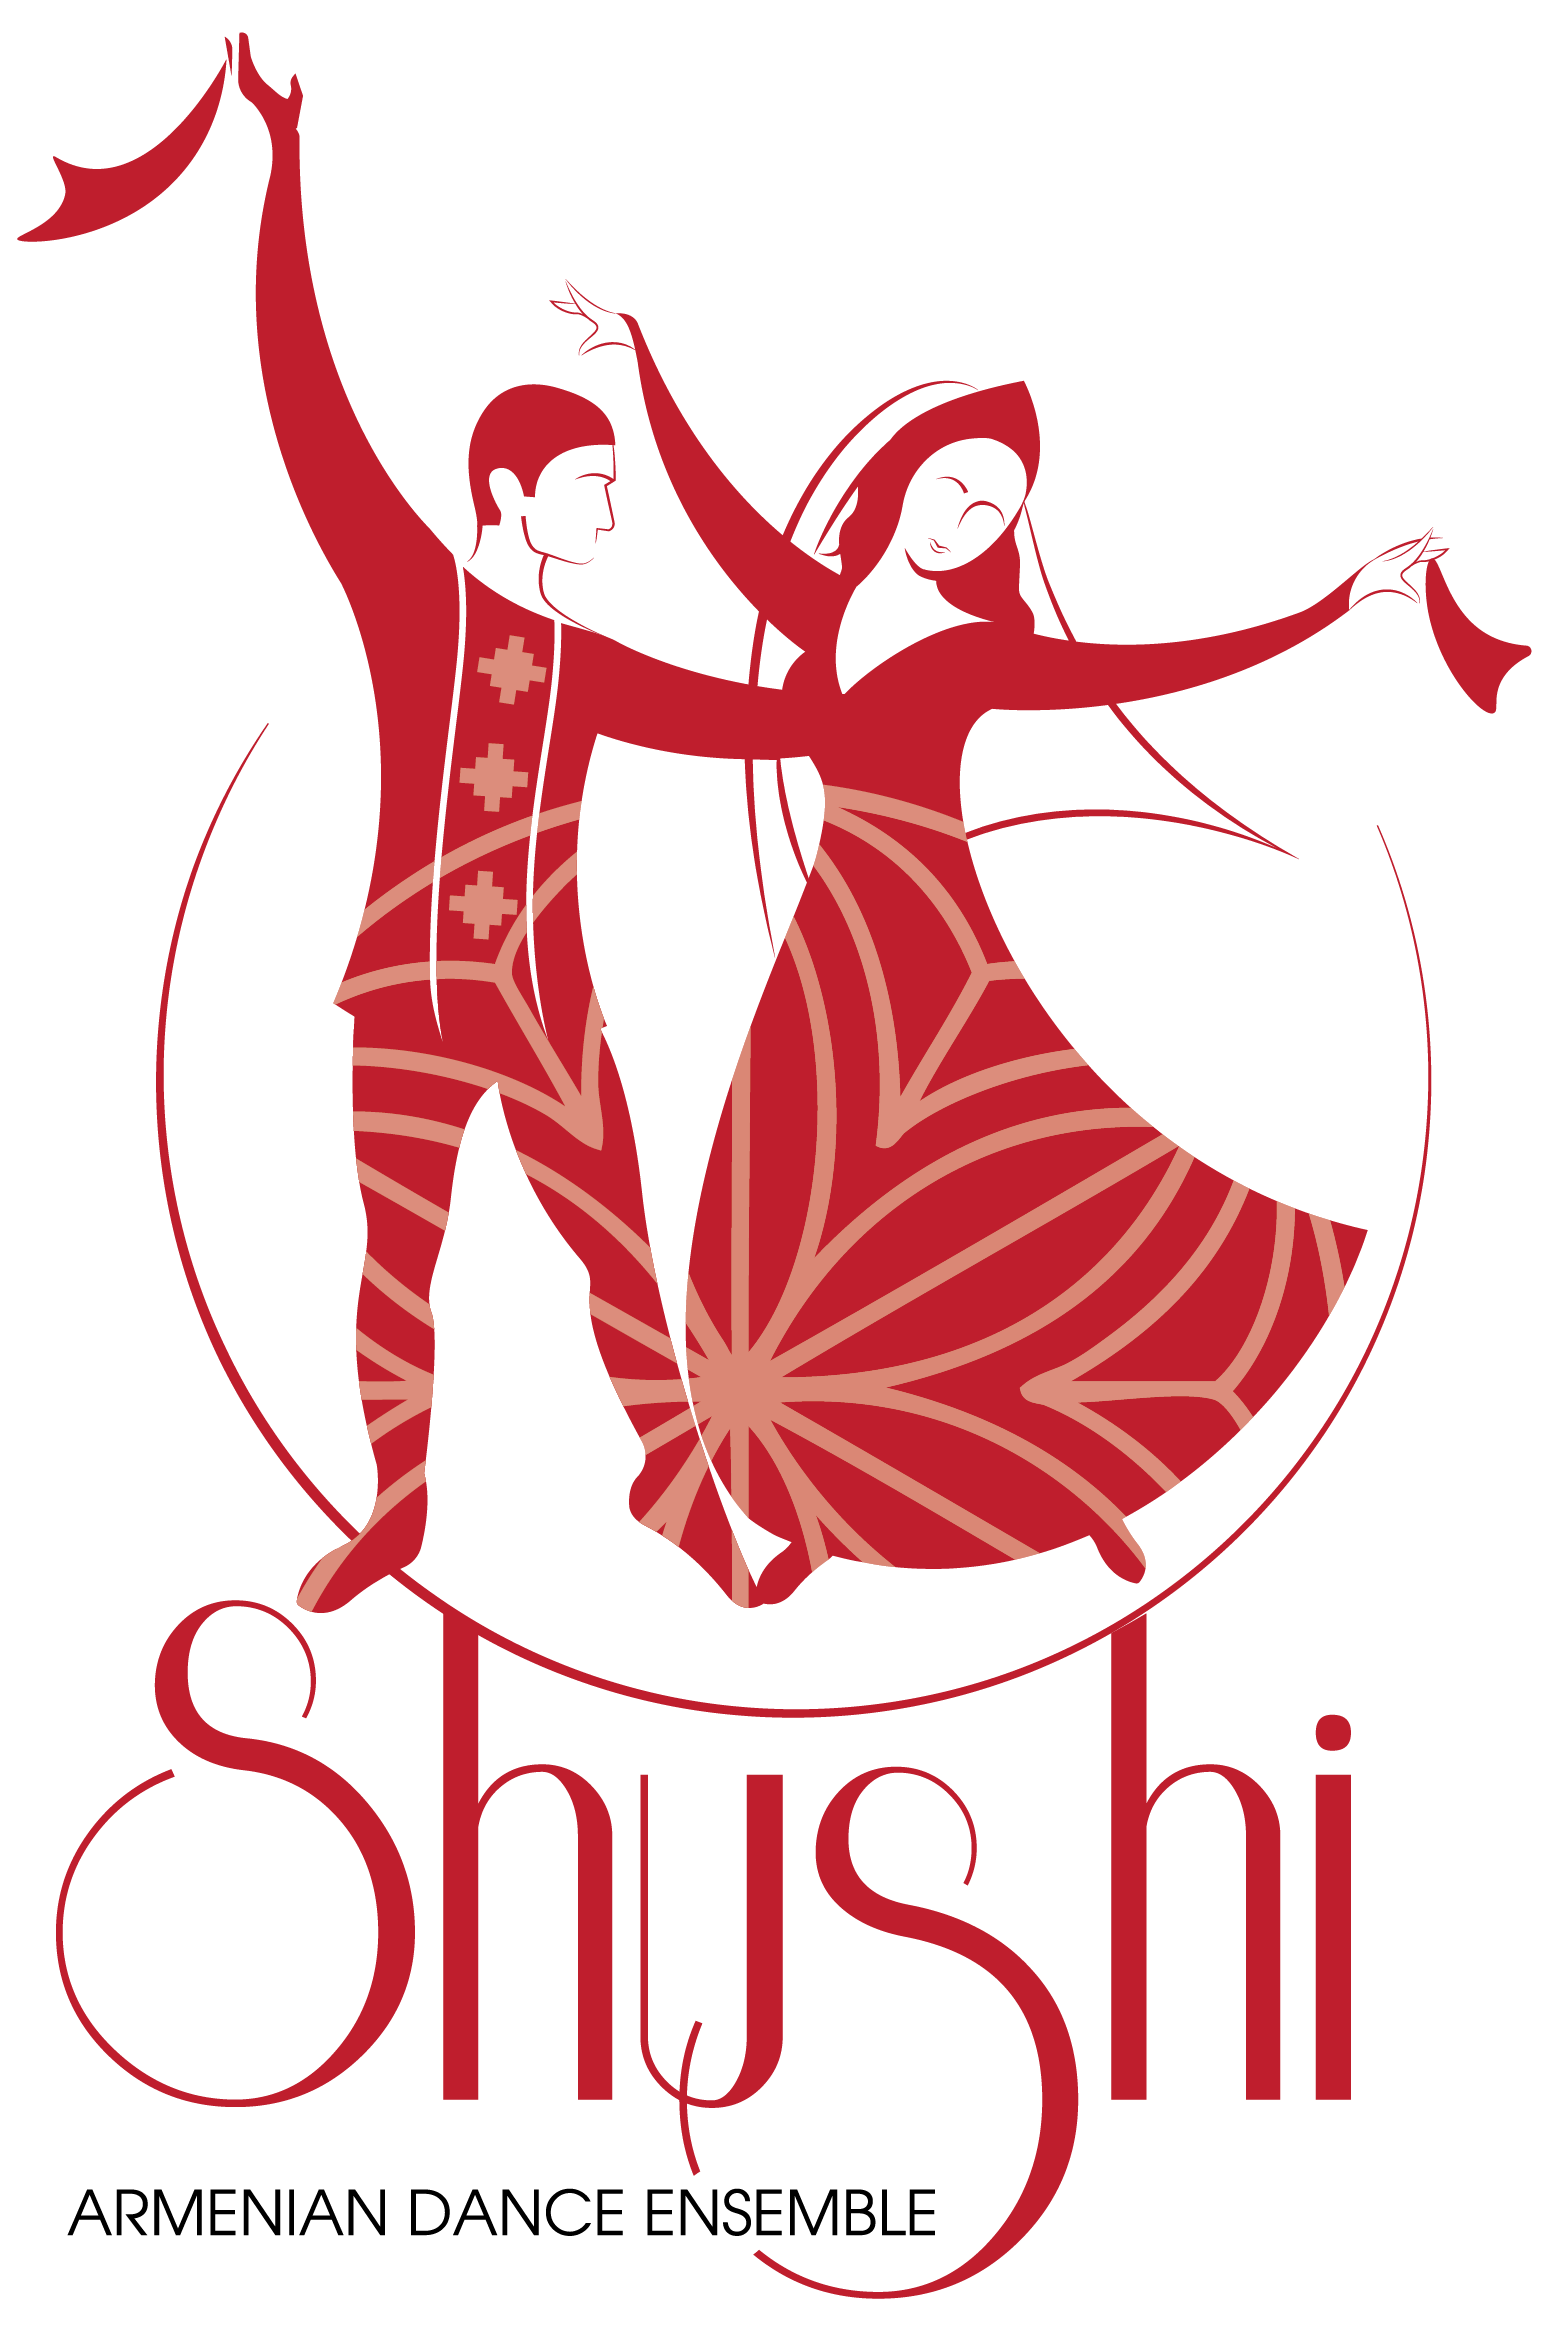 Shushi dance ensemble. Facebook clipart poster